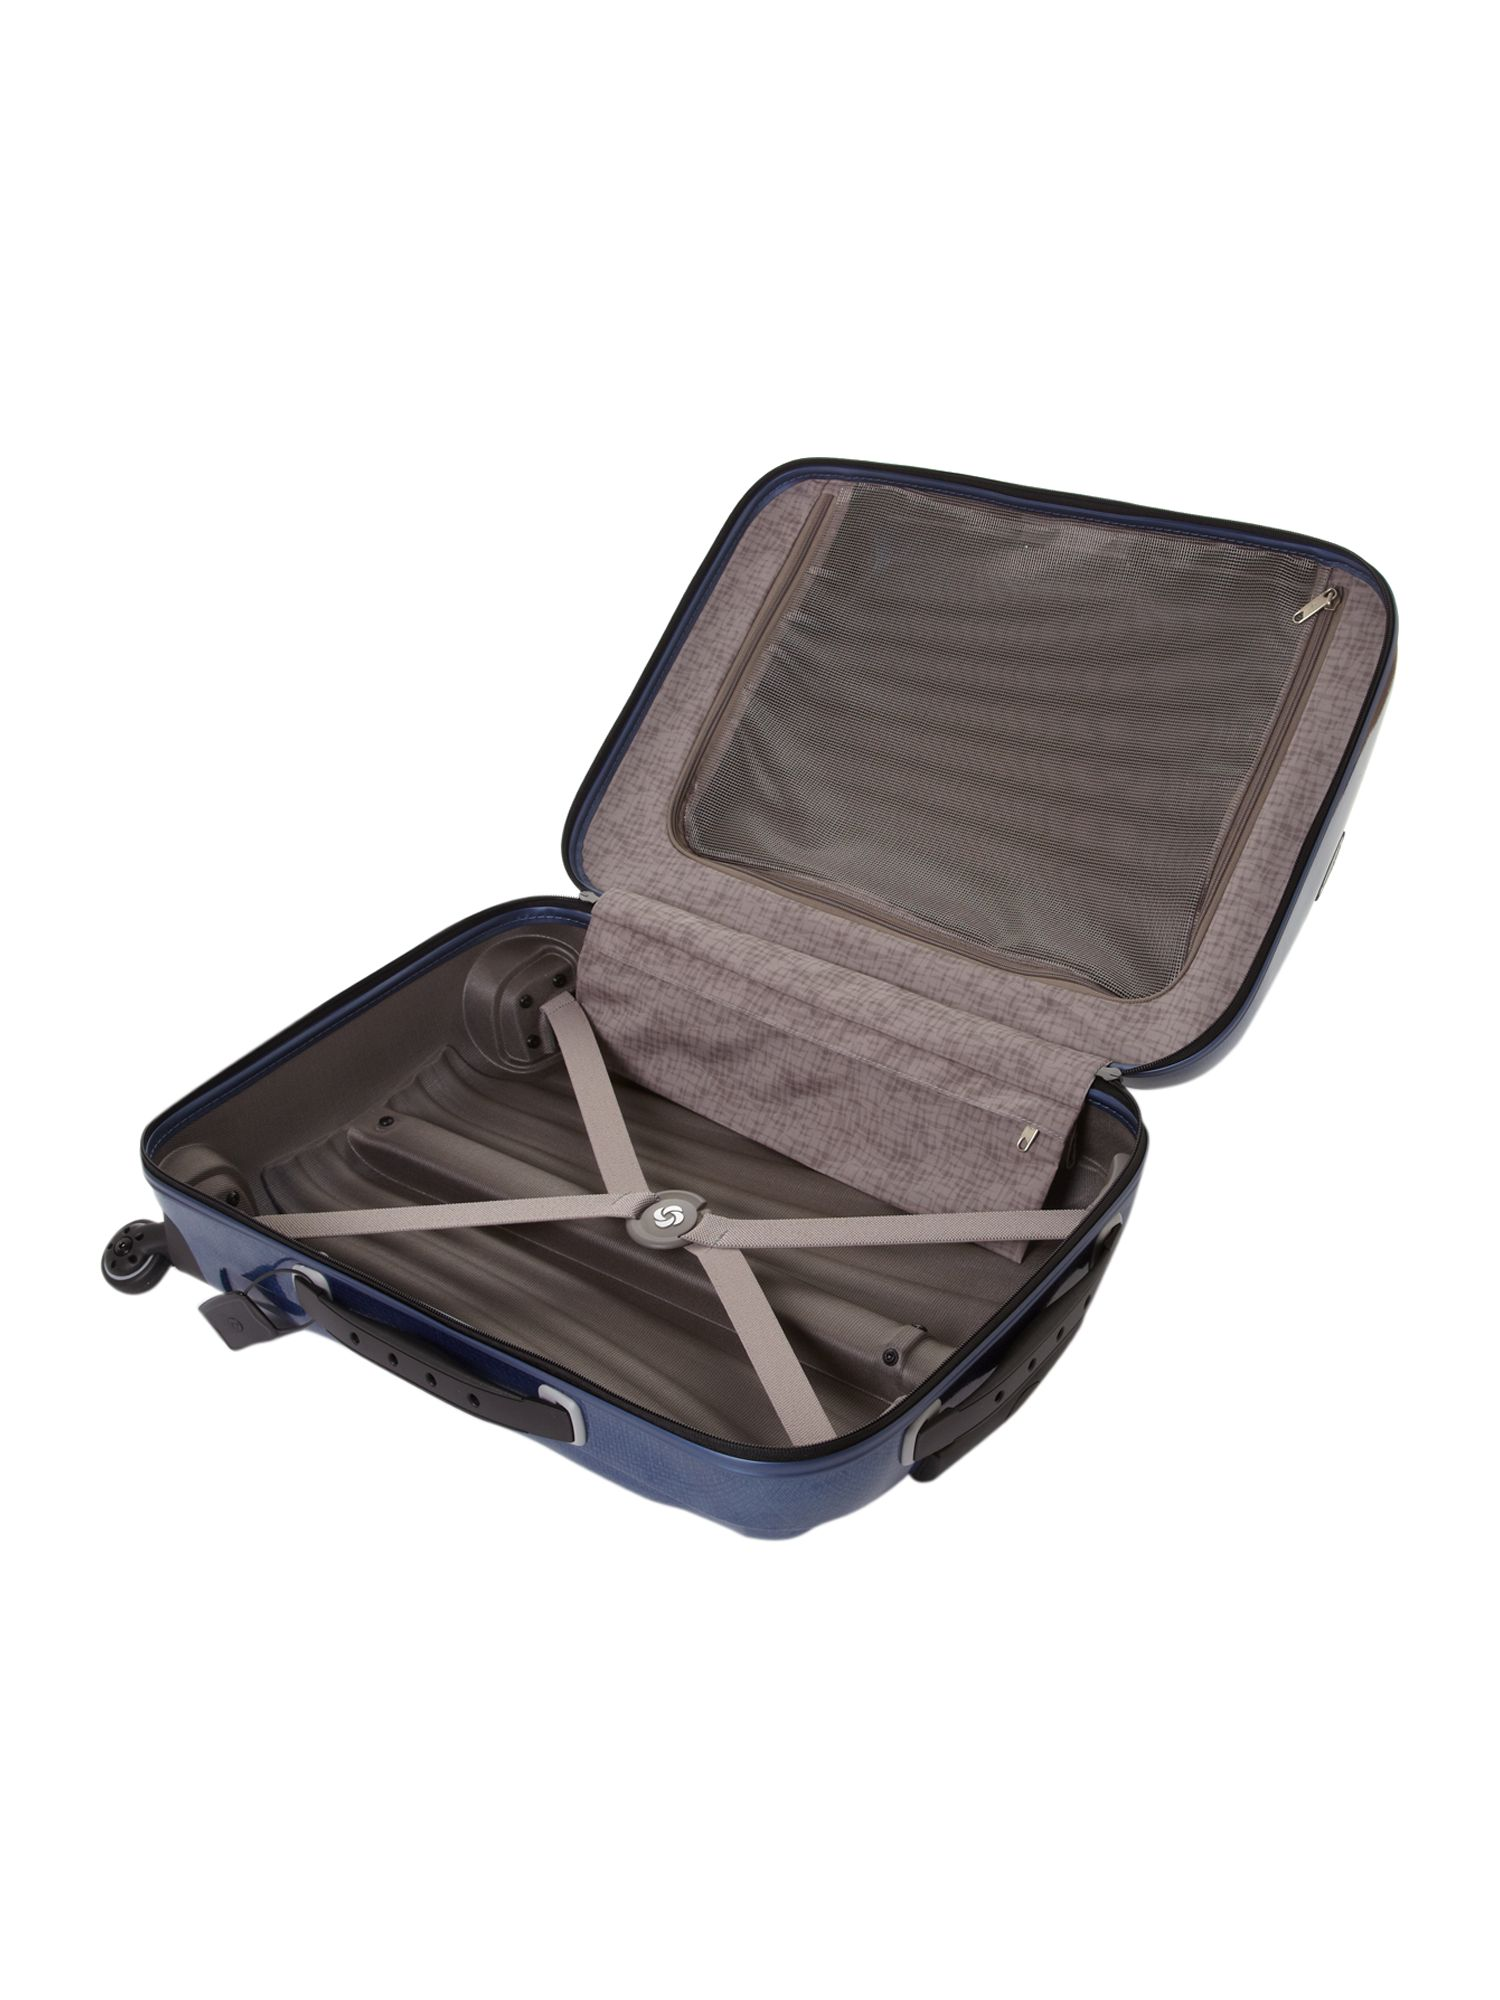 New cosmolite 4-wheel cabin case